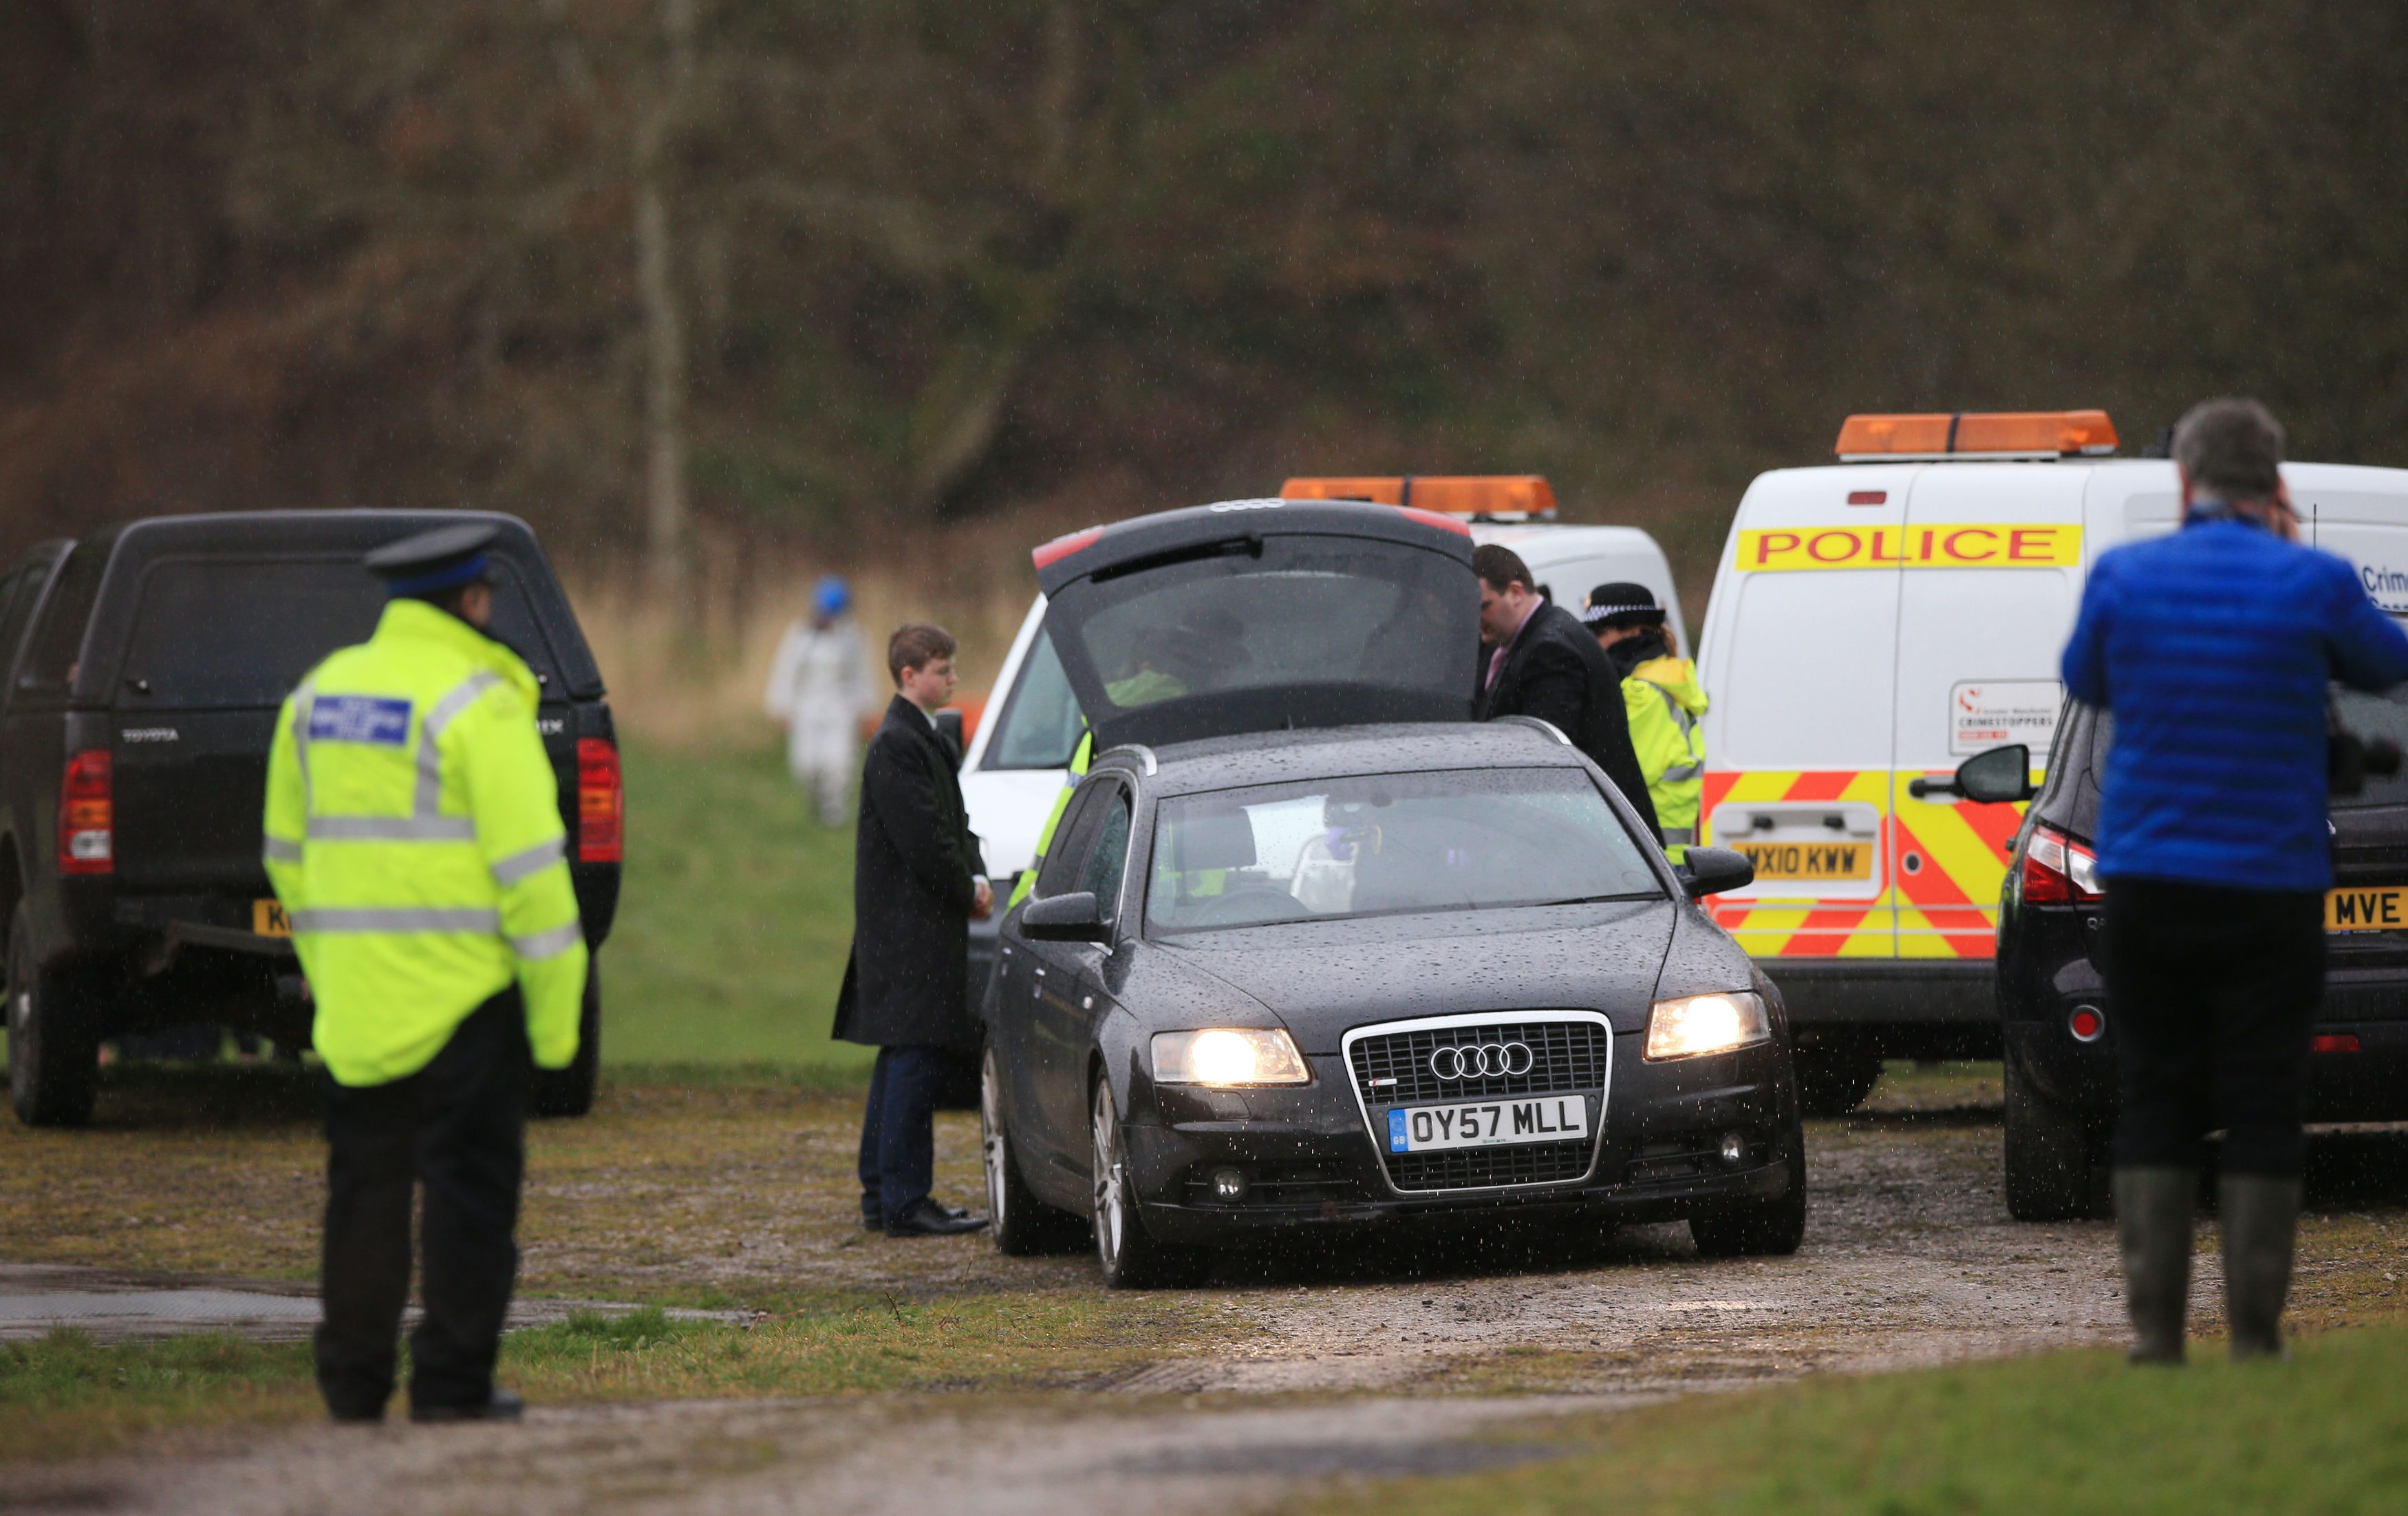 Man And Woman Arrested On Suspicion Of Murder After Baby's Body Found In